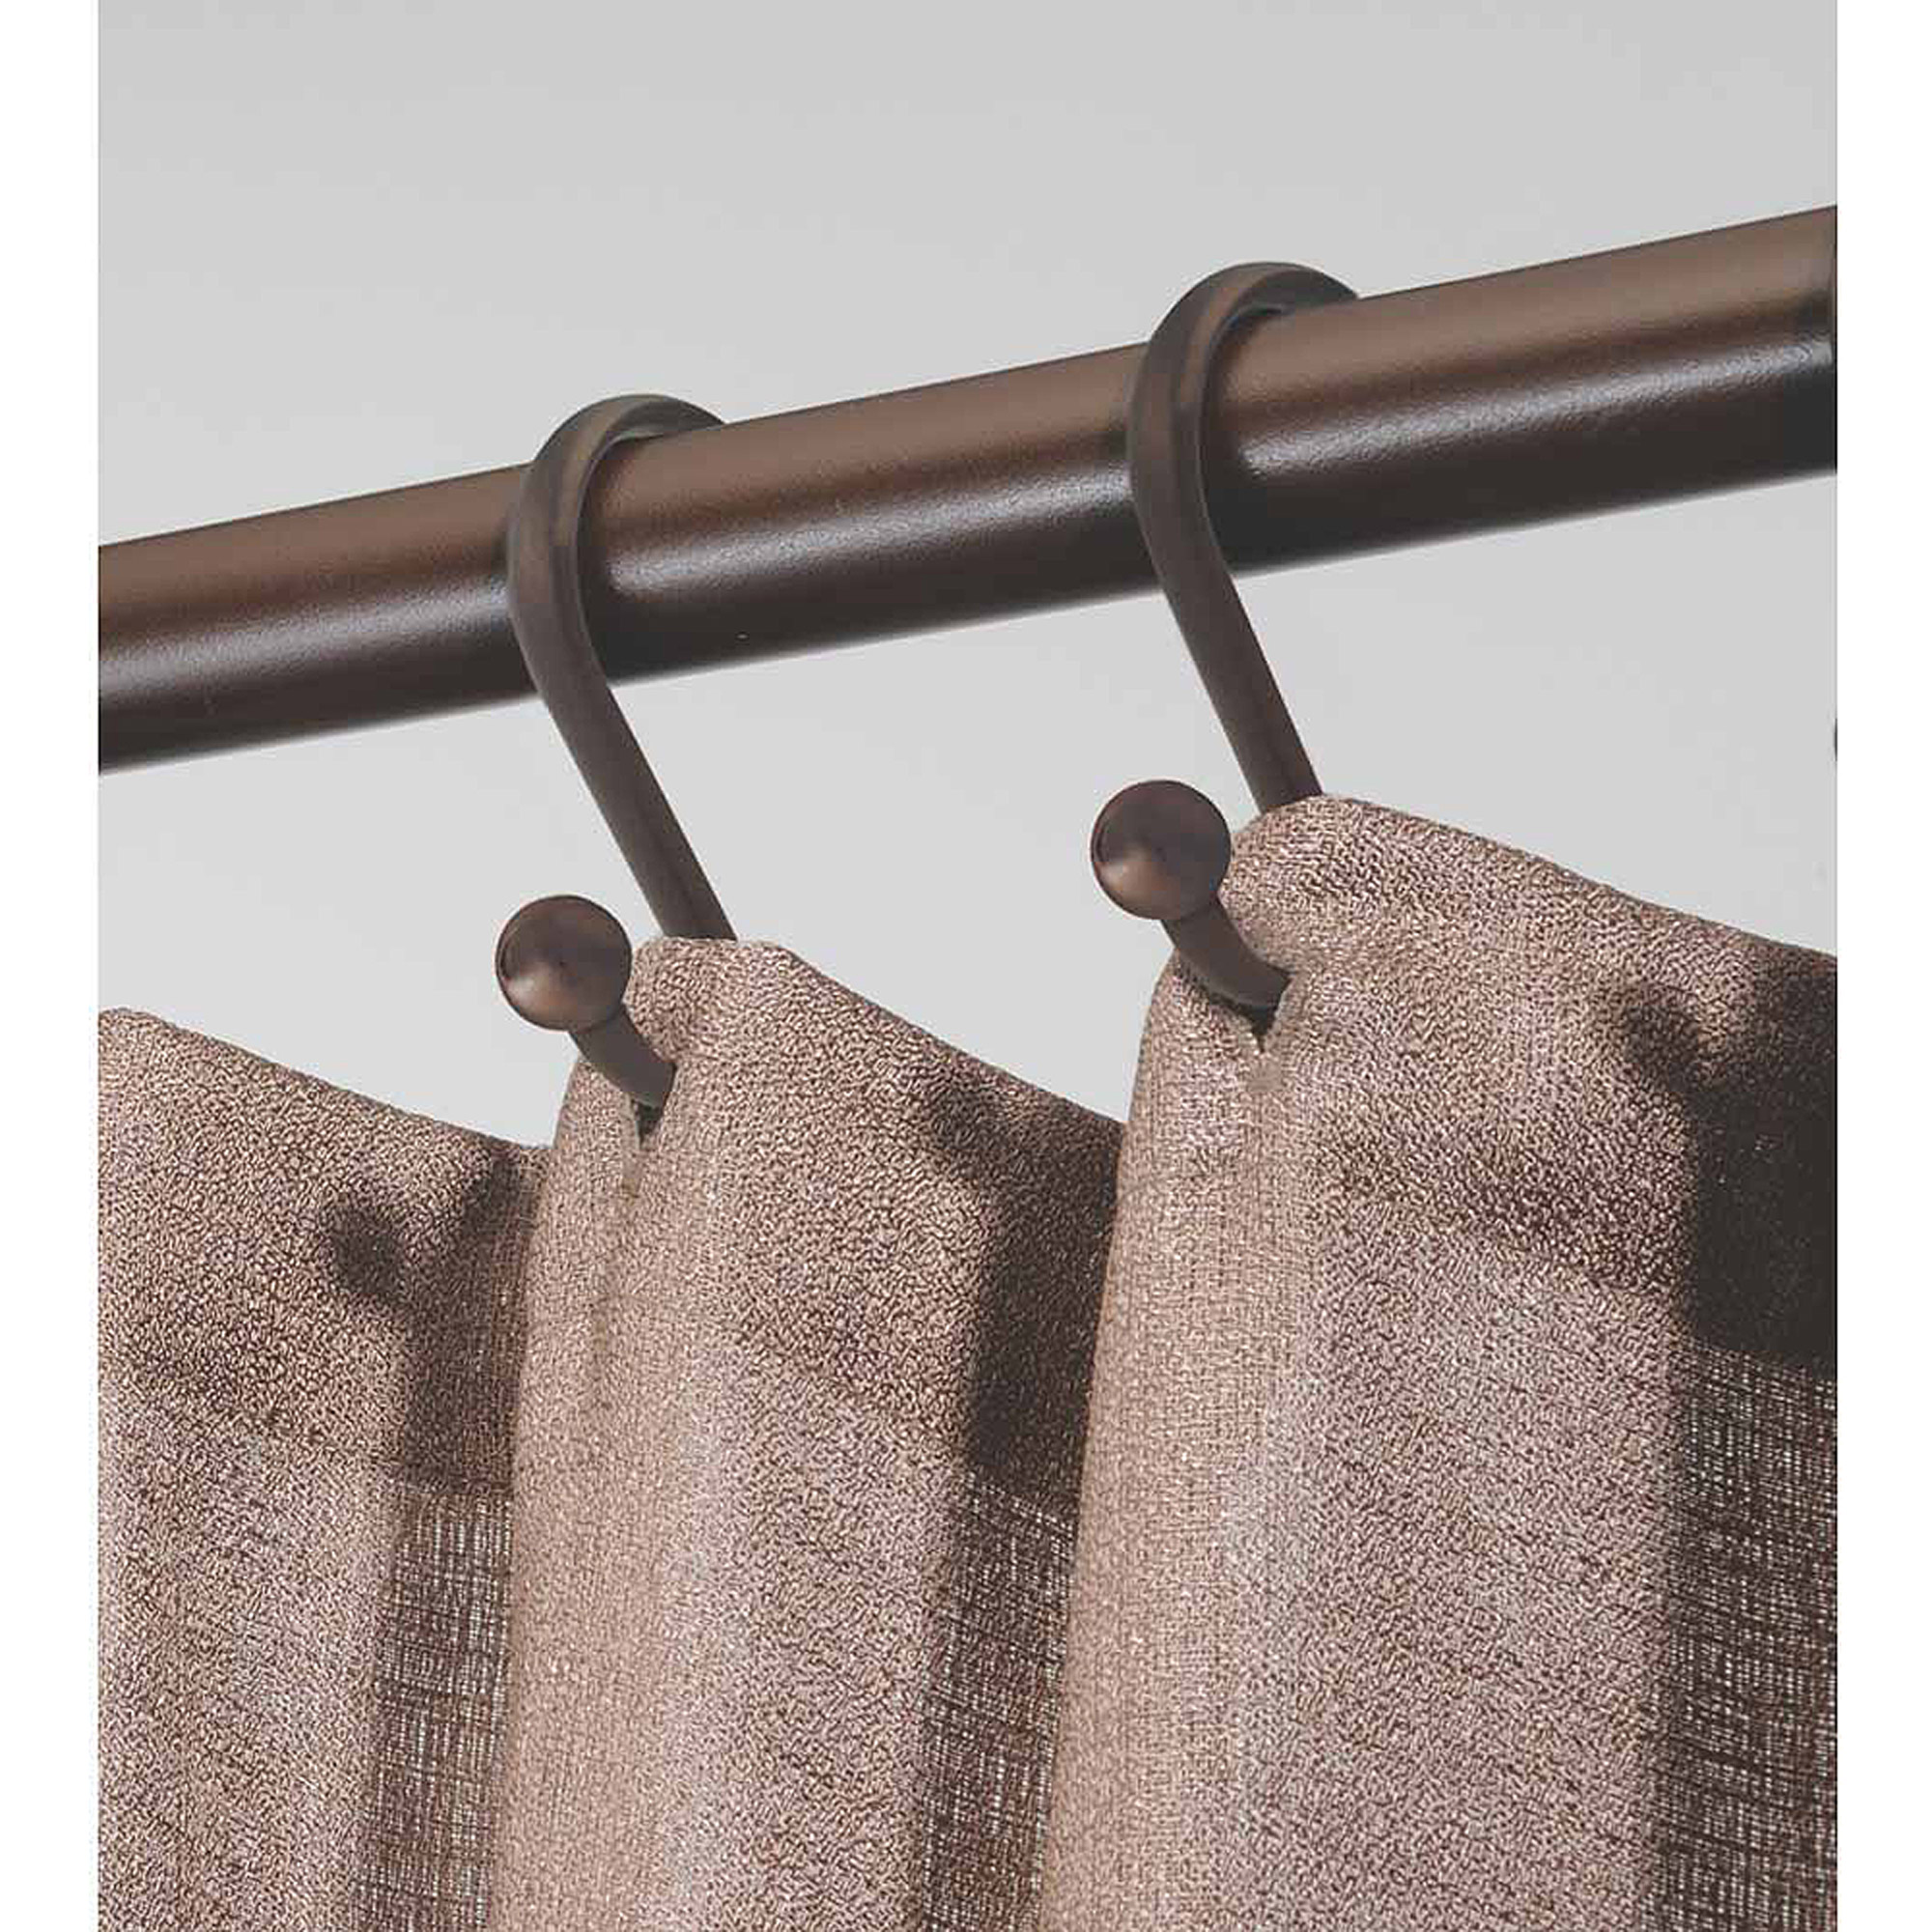 InterDesign Axis Shower Curtain S-Hooks with Ball Detail, Set of 12, Bronze